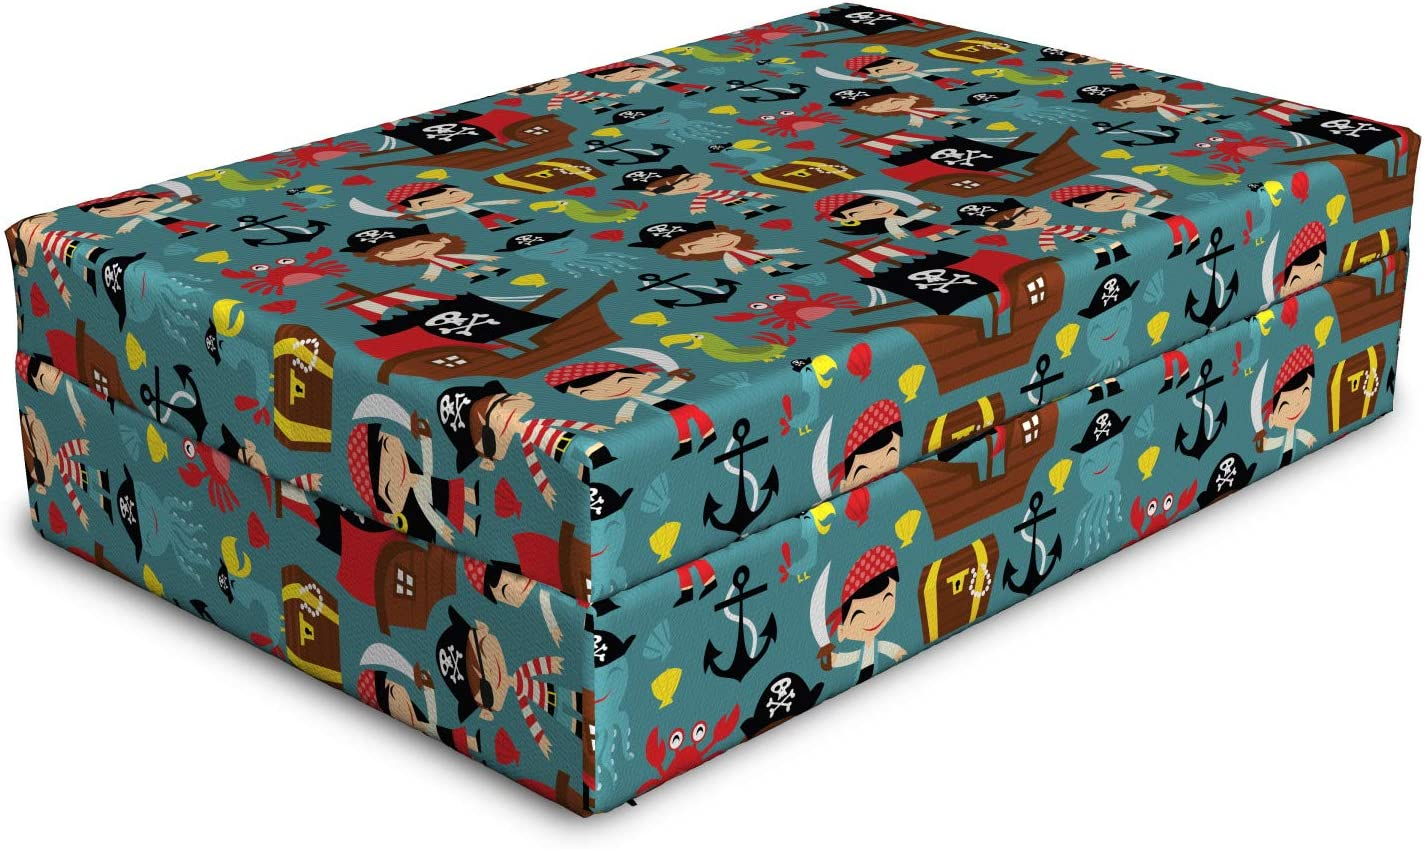 Ambesonne Pirates Dog Long-awaited Bed Illustration Pirate Fort Worth Mall Retro Adventur of